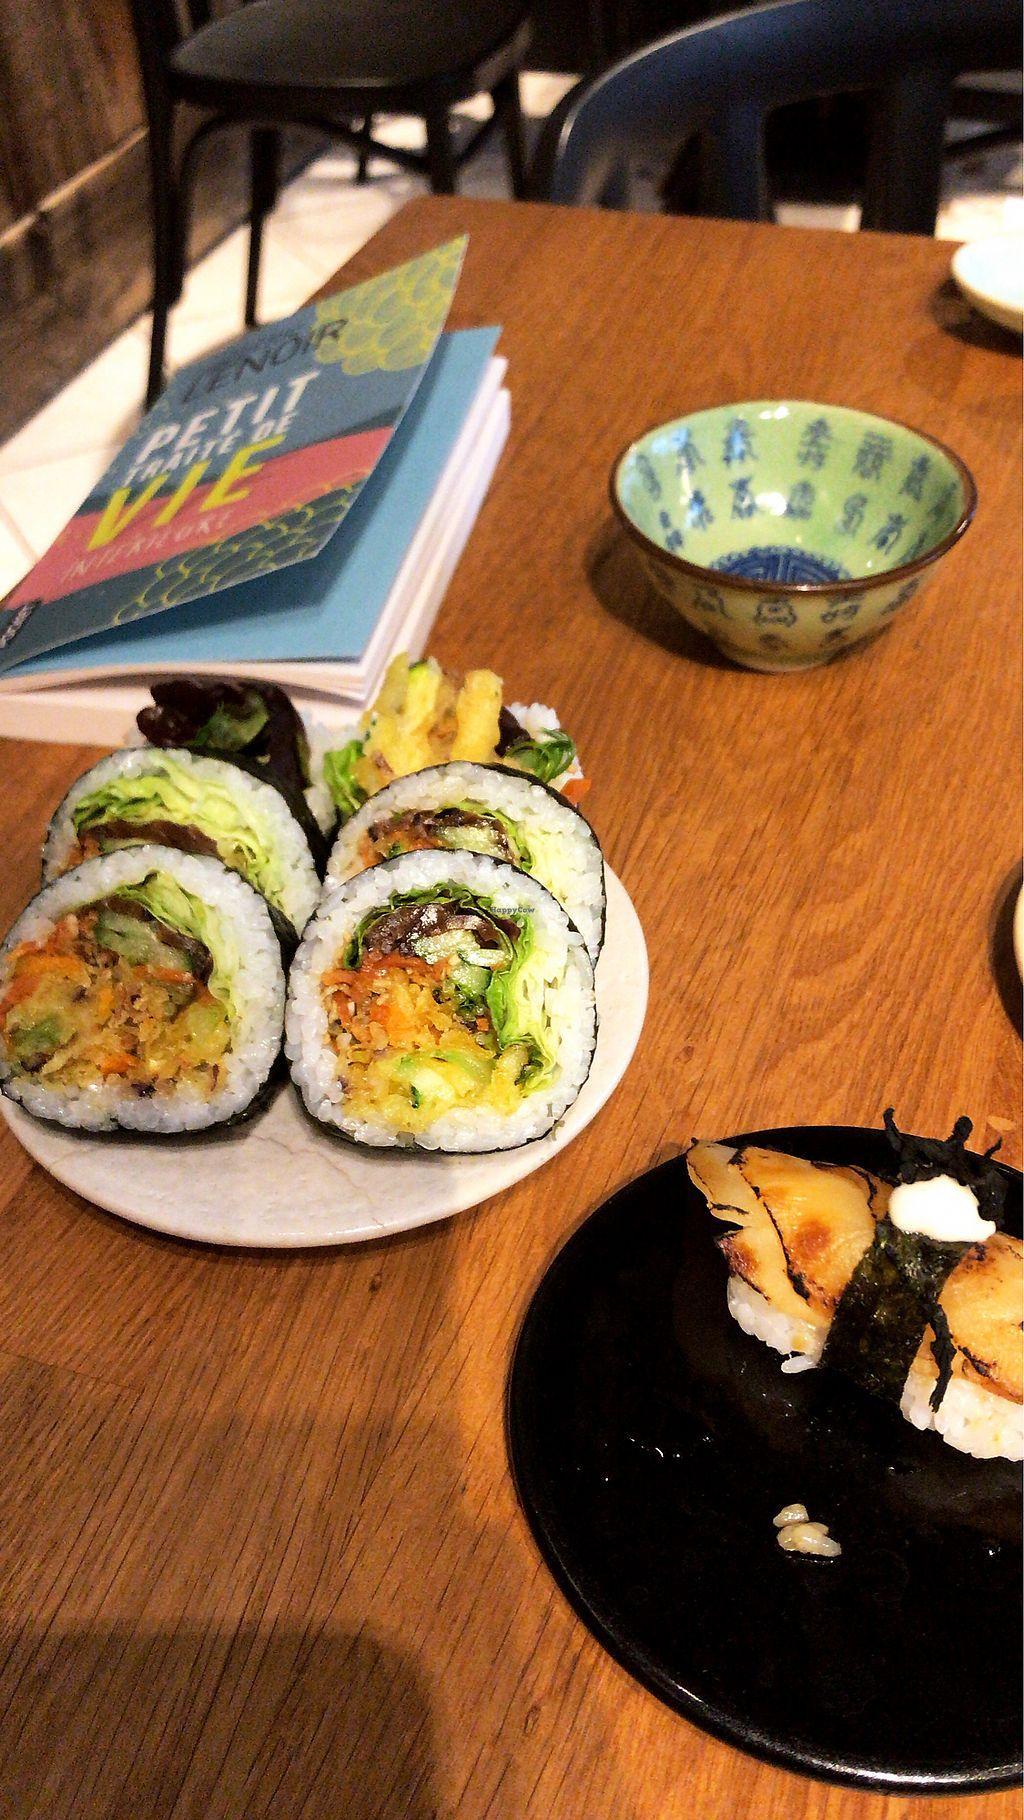 """Photo of Youmiko Vegan Sushi  by <a href=""""/members/profile/LaureMat"""">LaureMat</a> <br/>Sushi  <br/> April 2, 2018  - <a href='/contact/abuse/image/68693/379972'>Report</a>"""